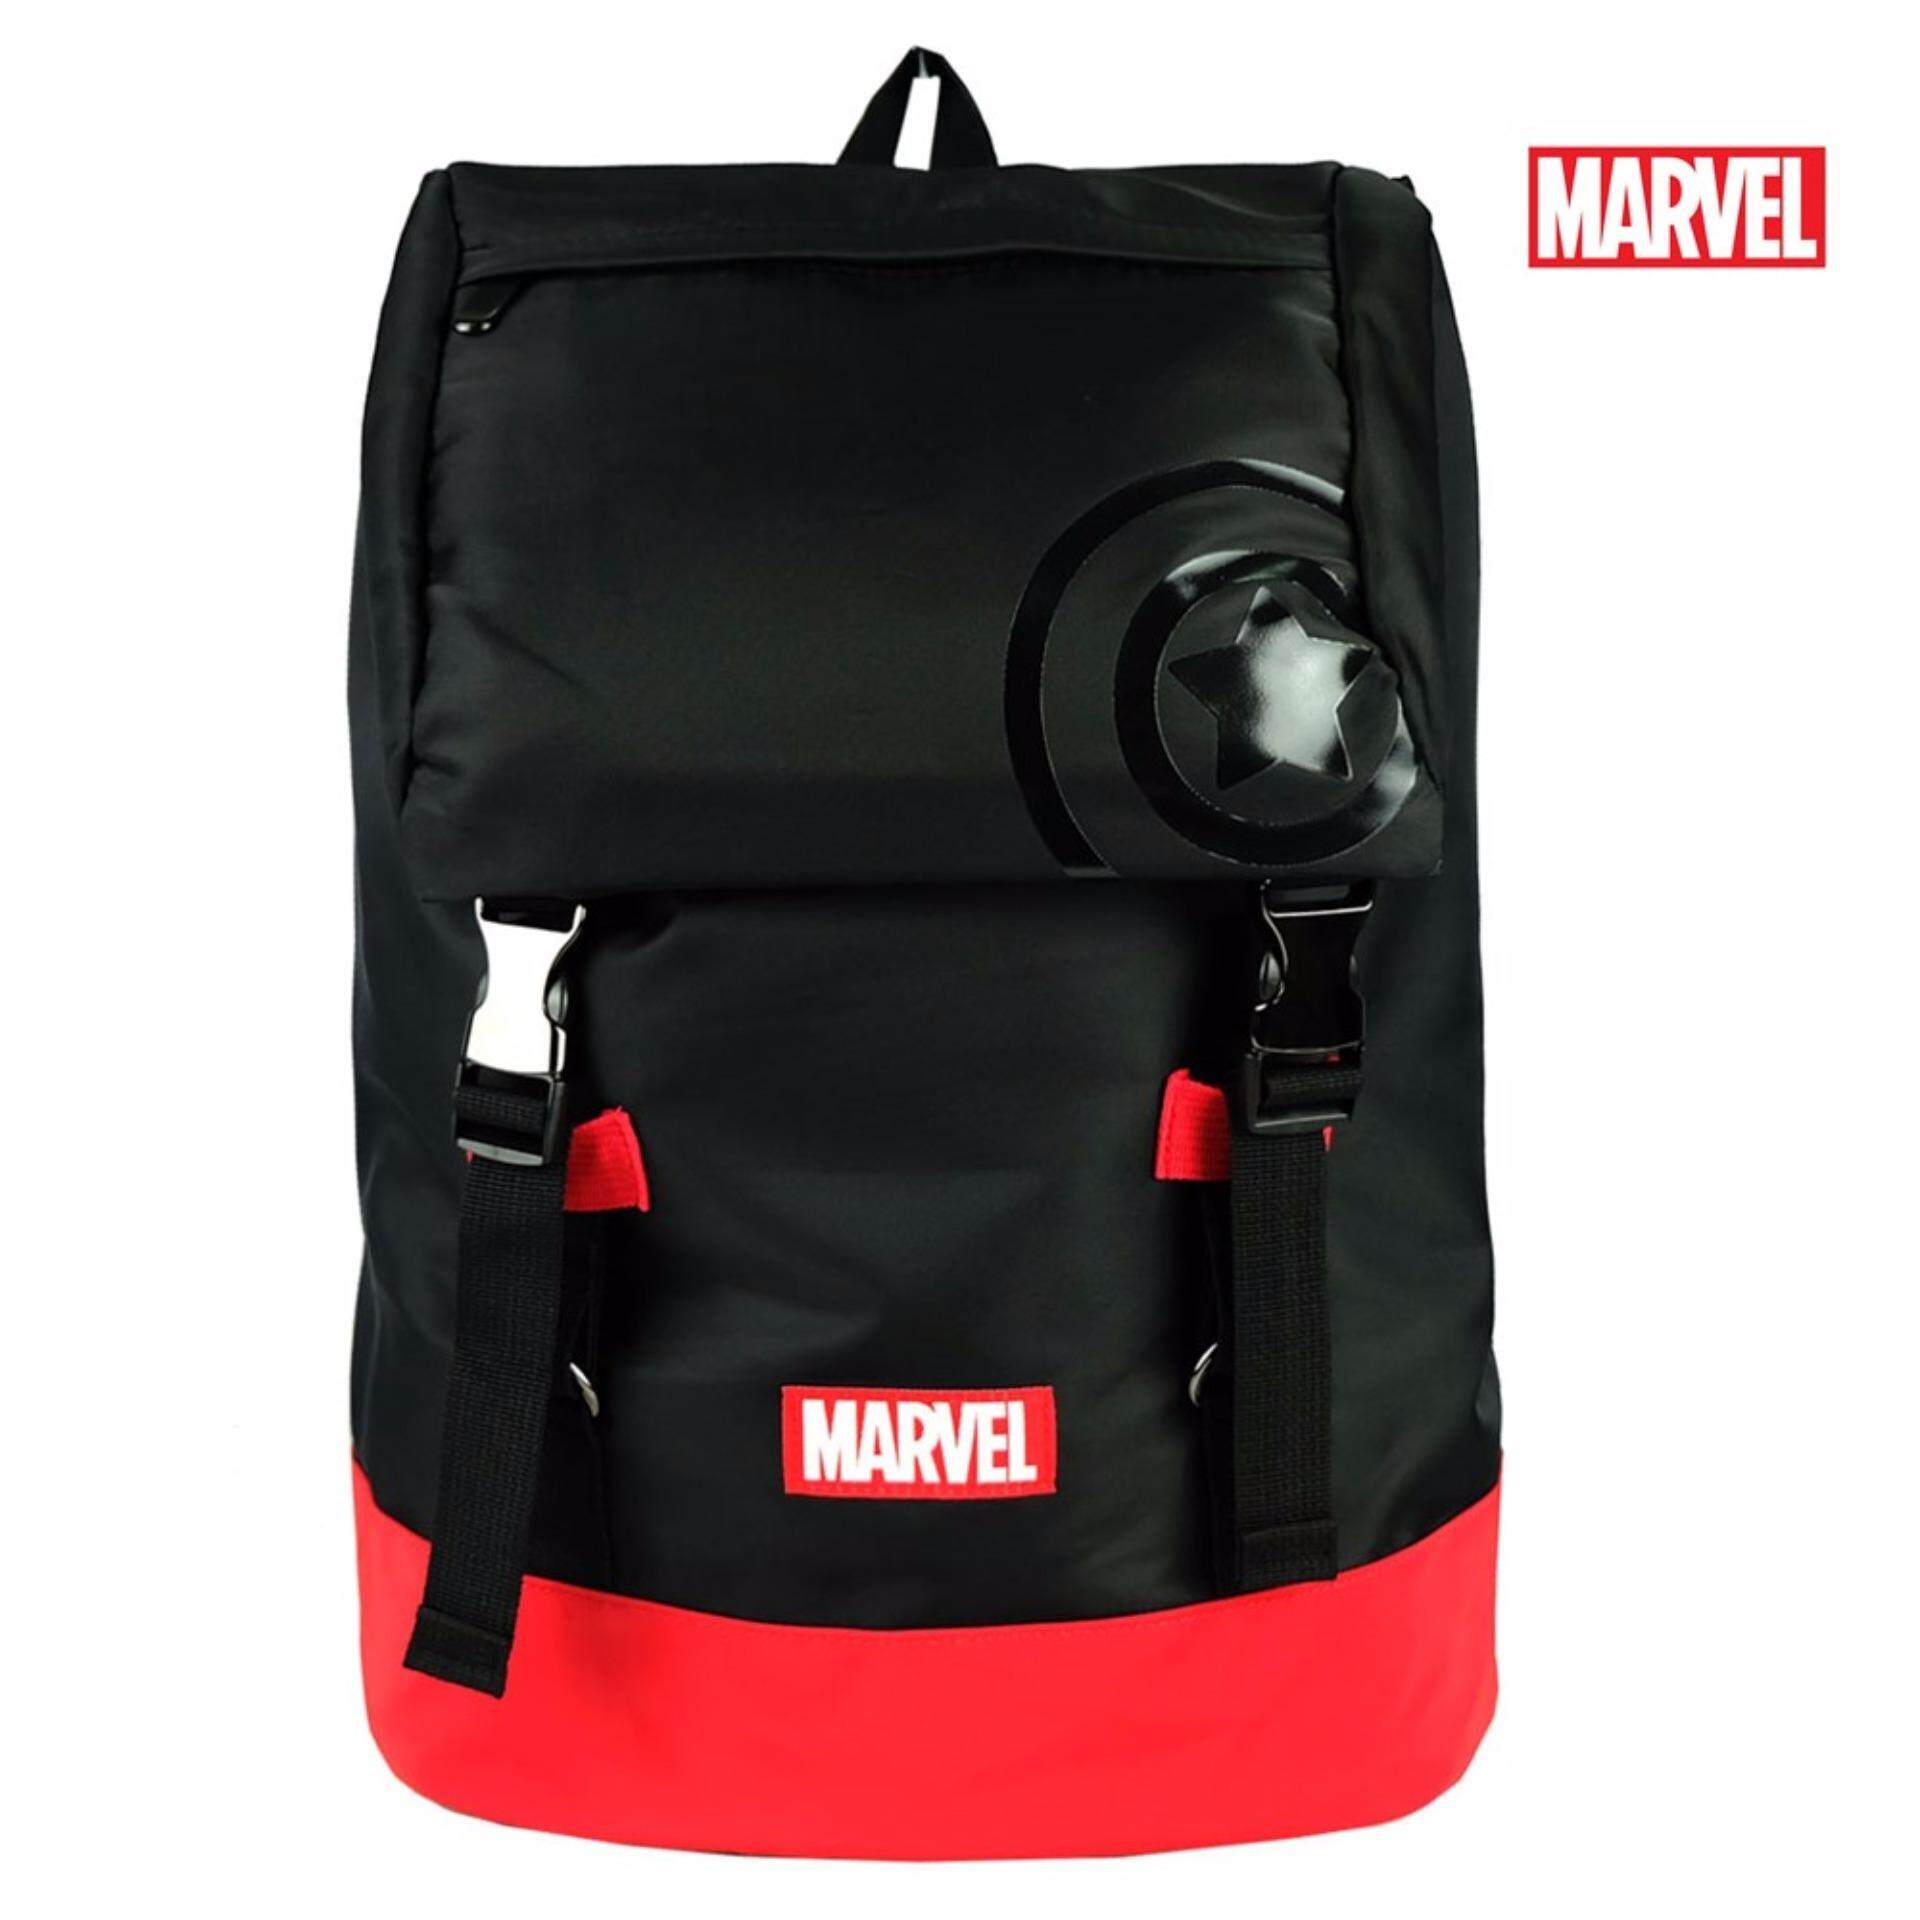 Marvel Kawaii VKB1732 18 Inch Trendy Backpack- Black/Red